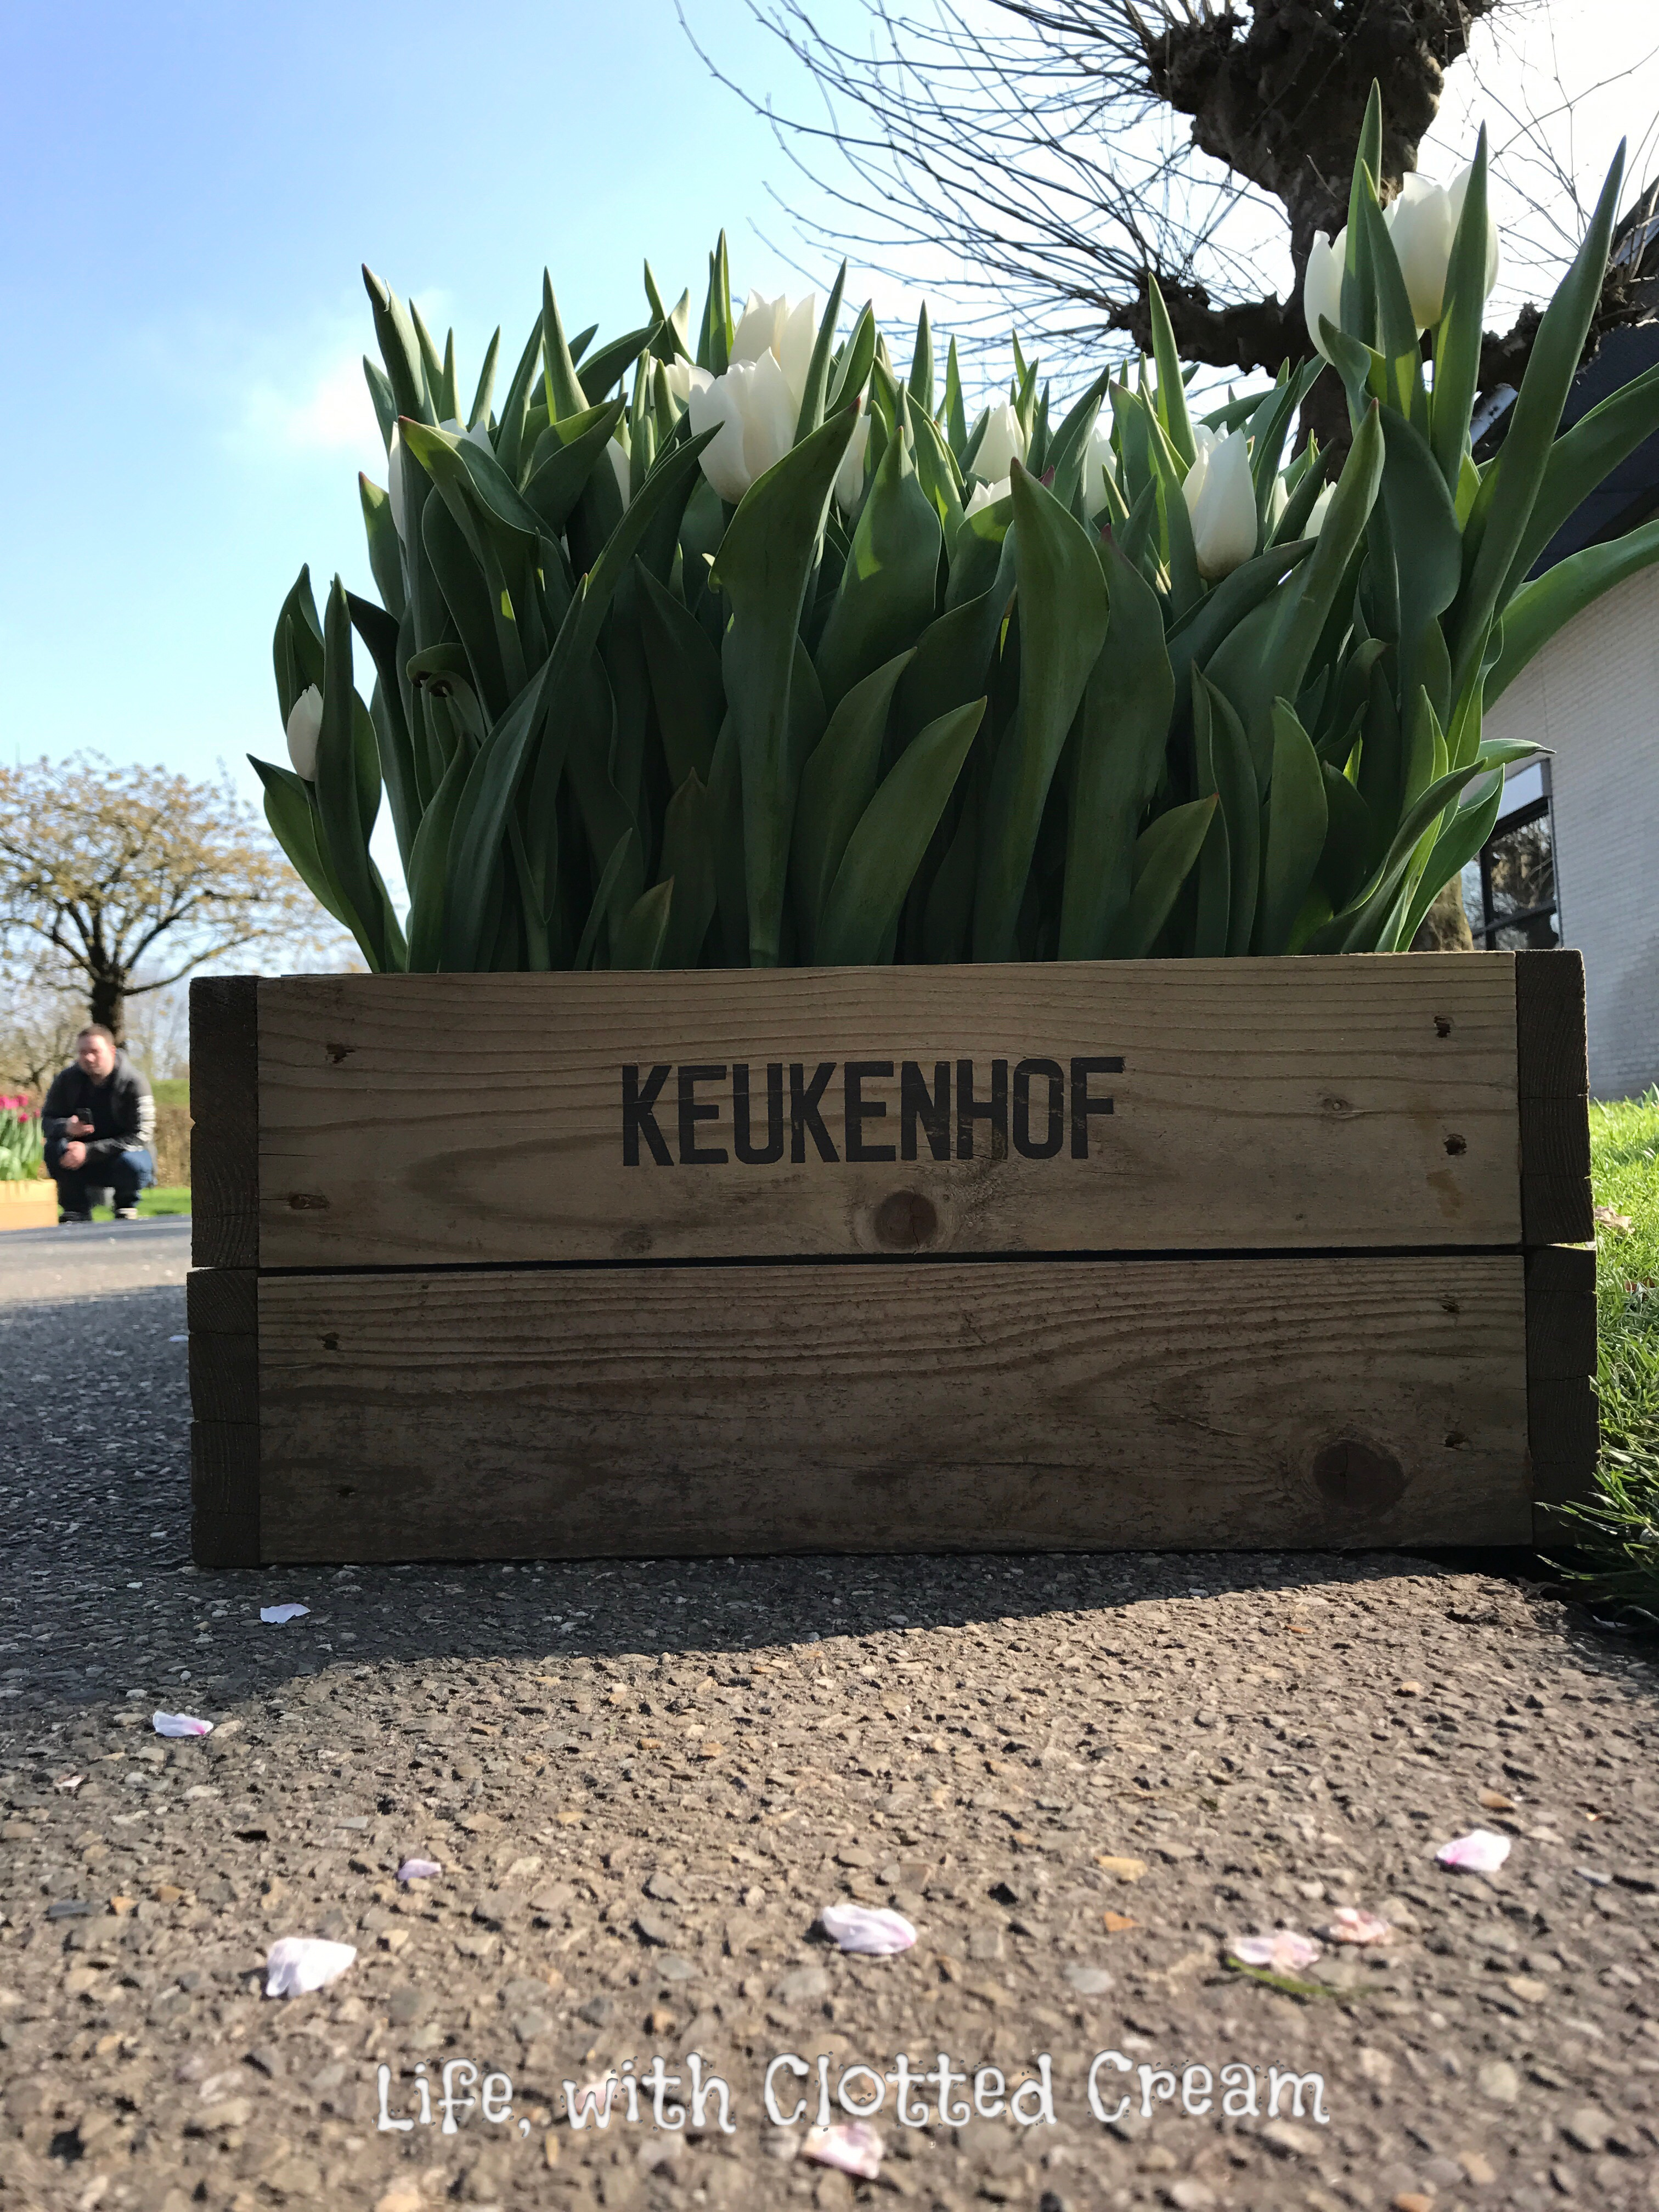 A wooden flower box at Keukenhof